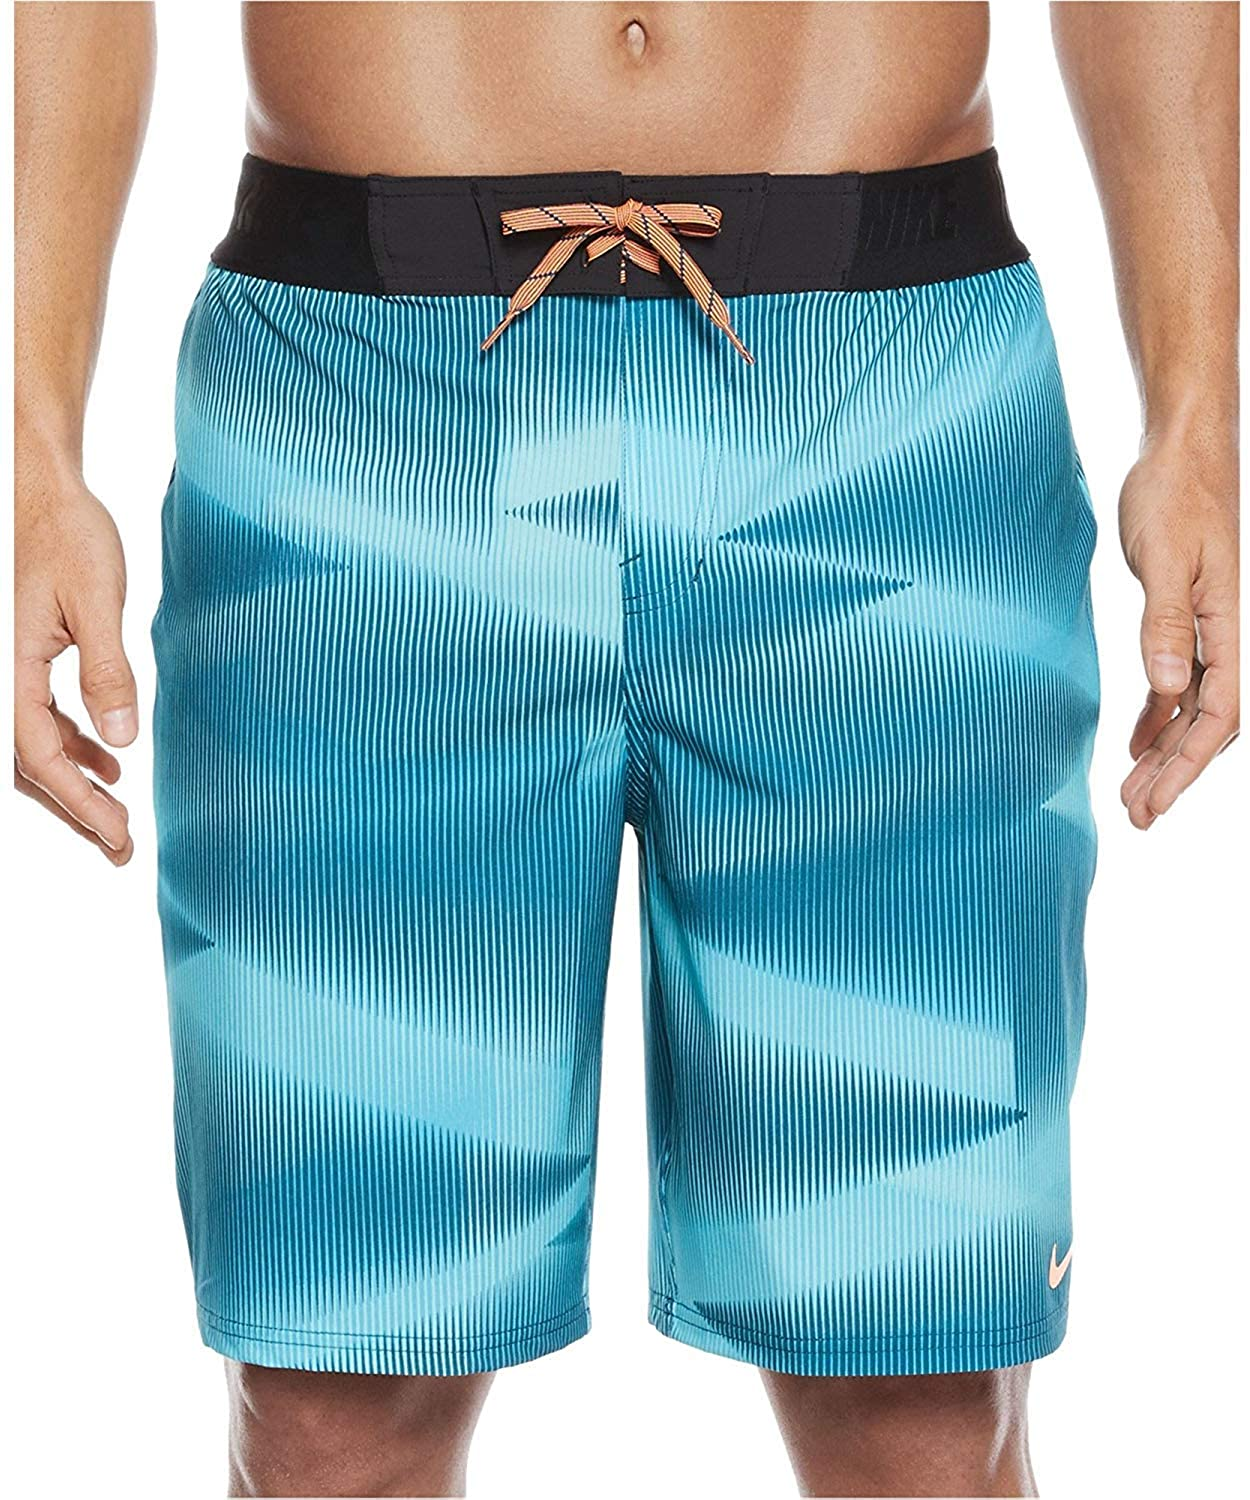 Nike Mens Vapor Swim Bottom Board Shorts